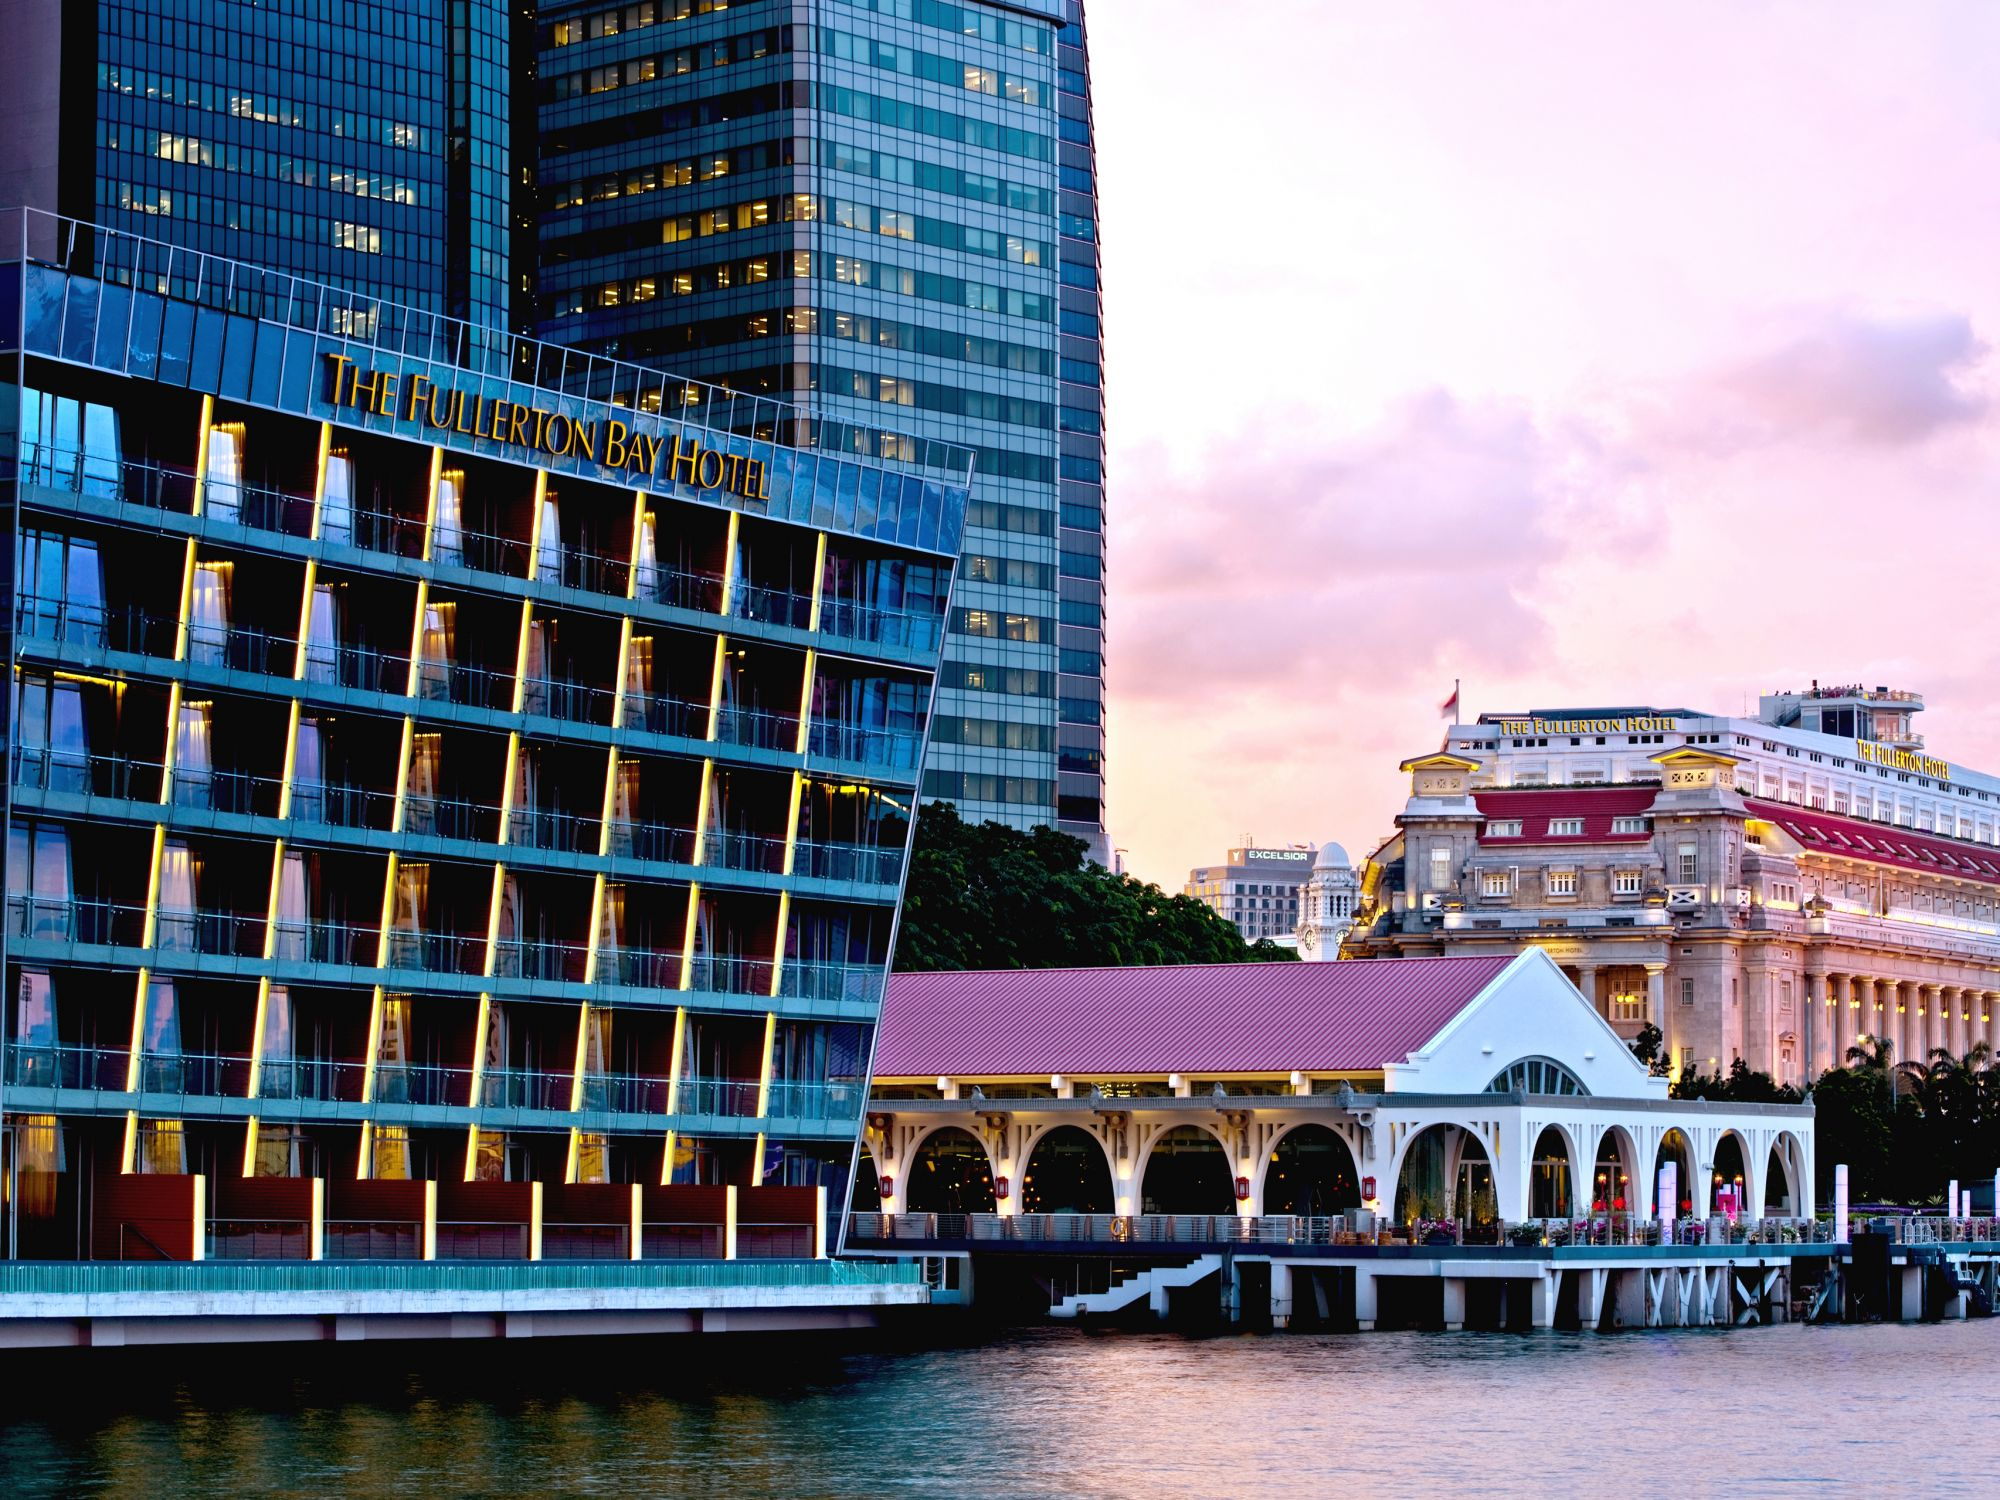 Fullerton Bay Hotel Singapore: Hotel Staycation Review